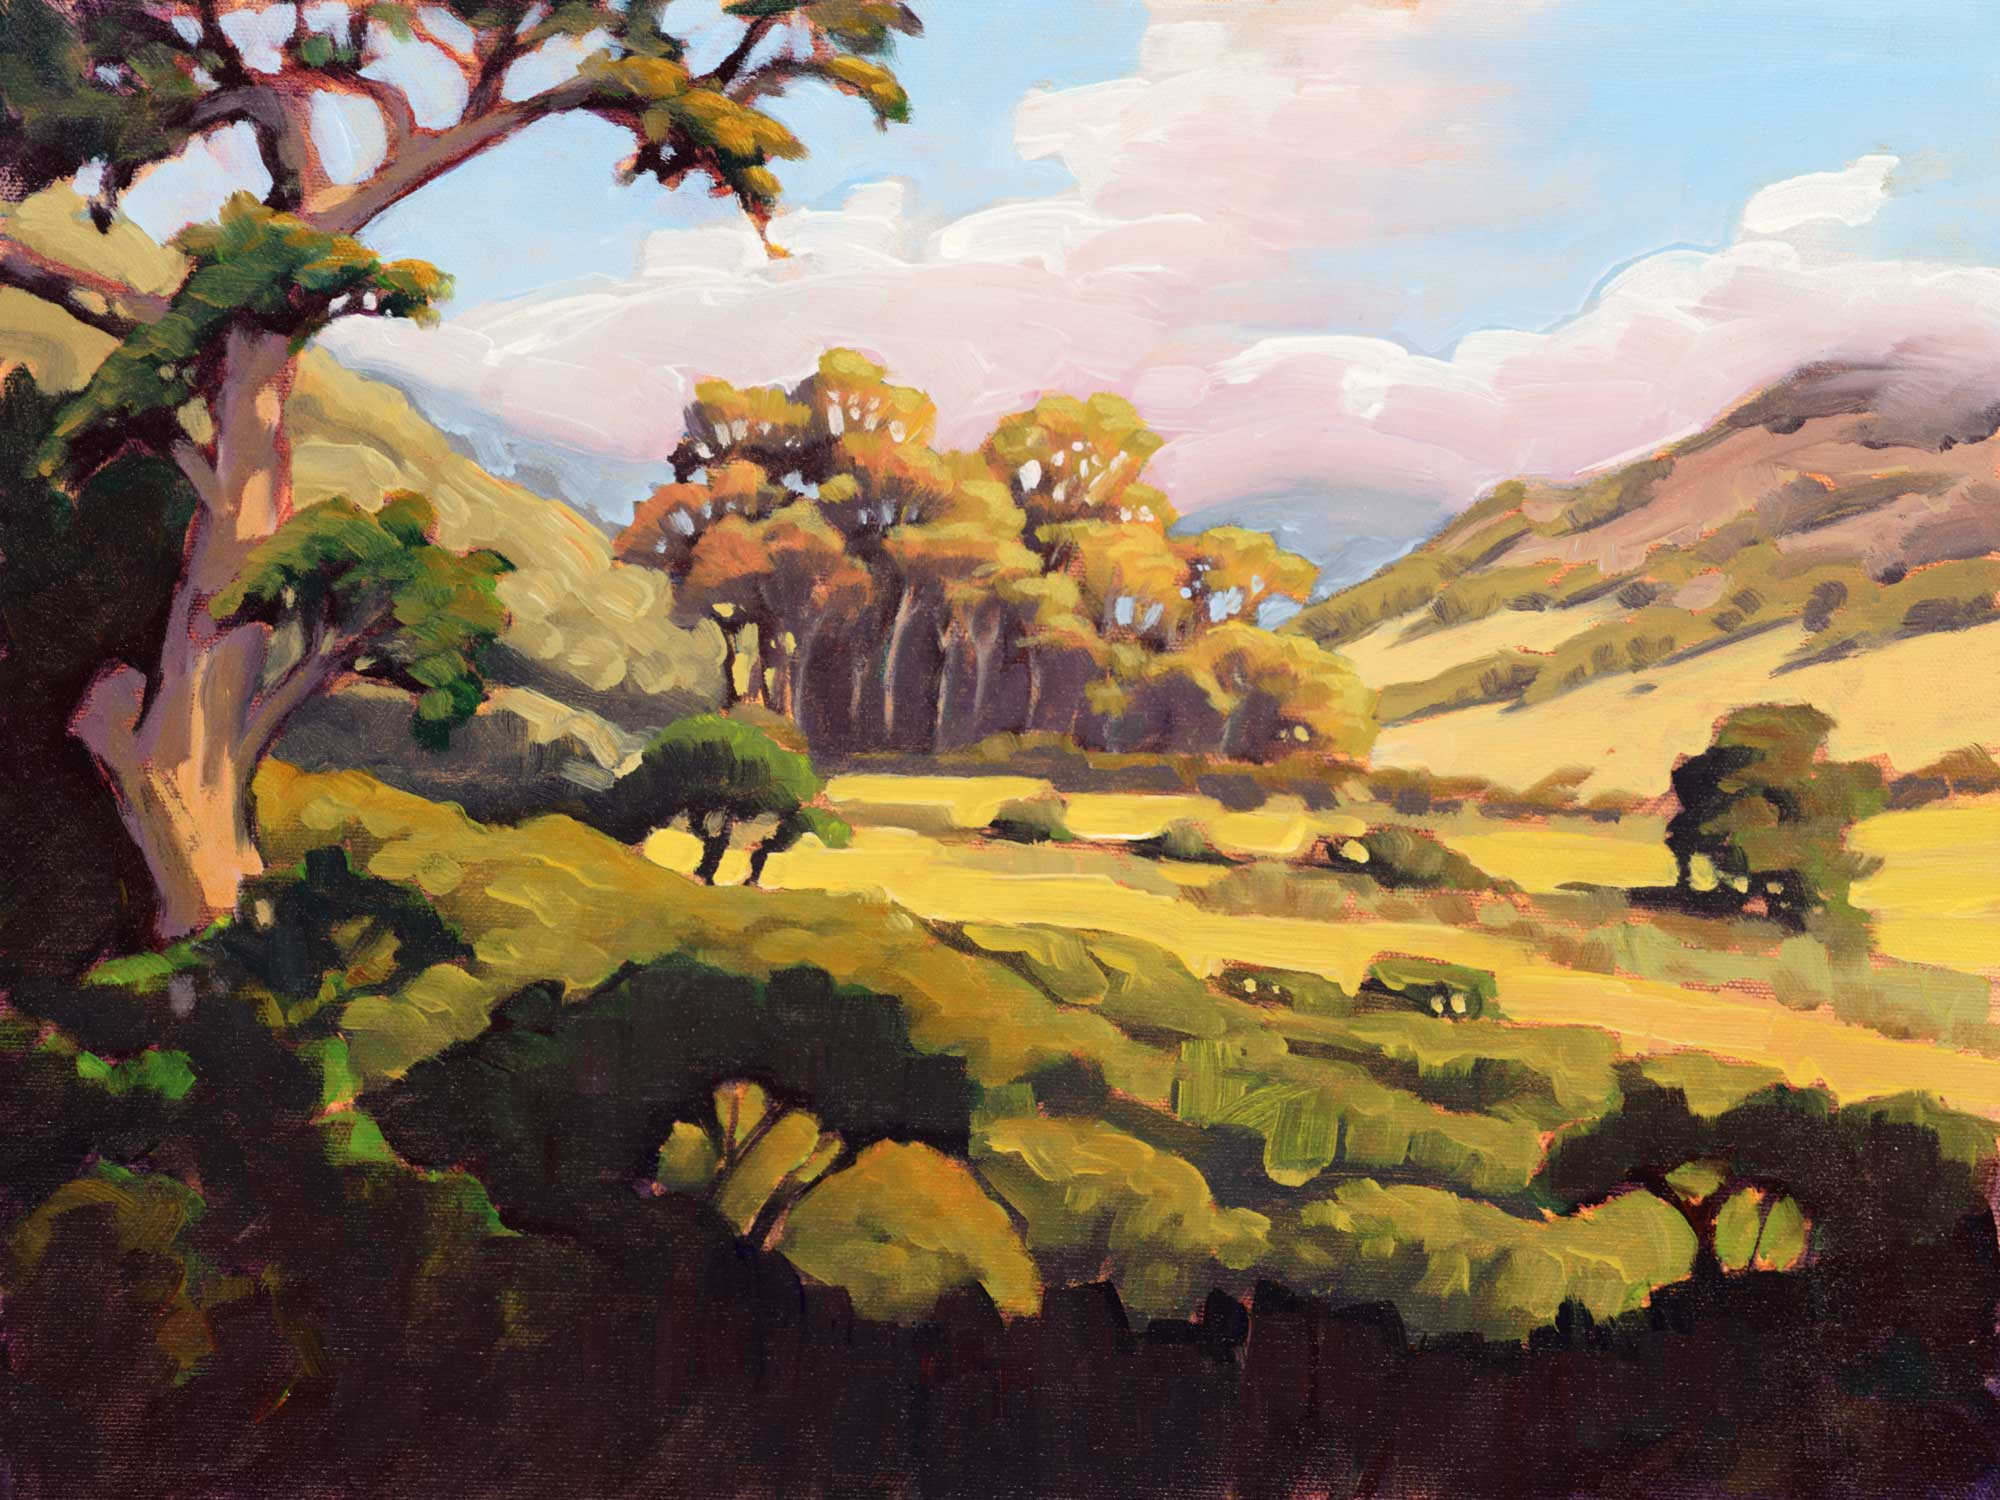 A Plein air painting of the central valley of Santa Cruz one of the Channel Islands off the coast of California